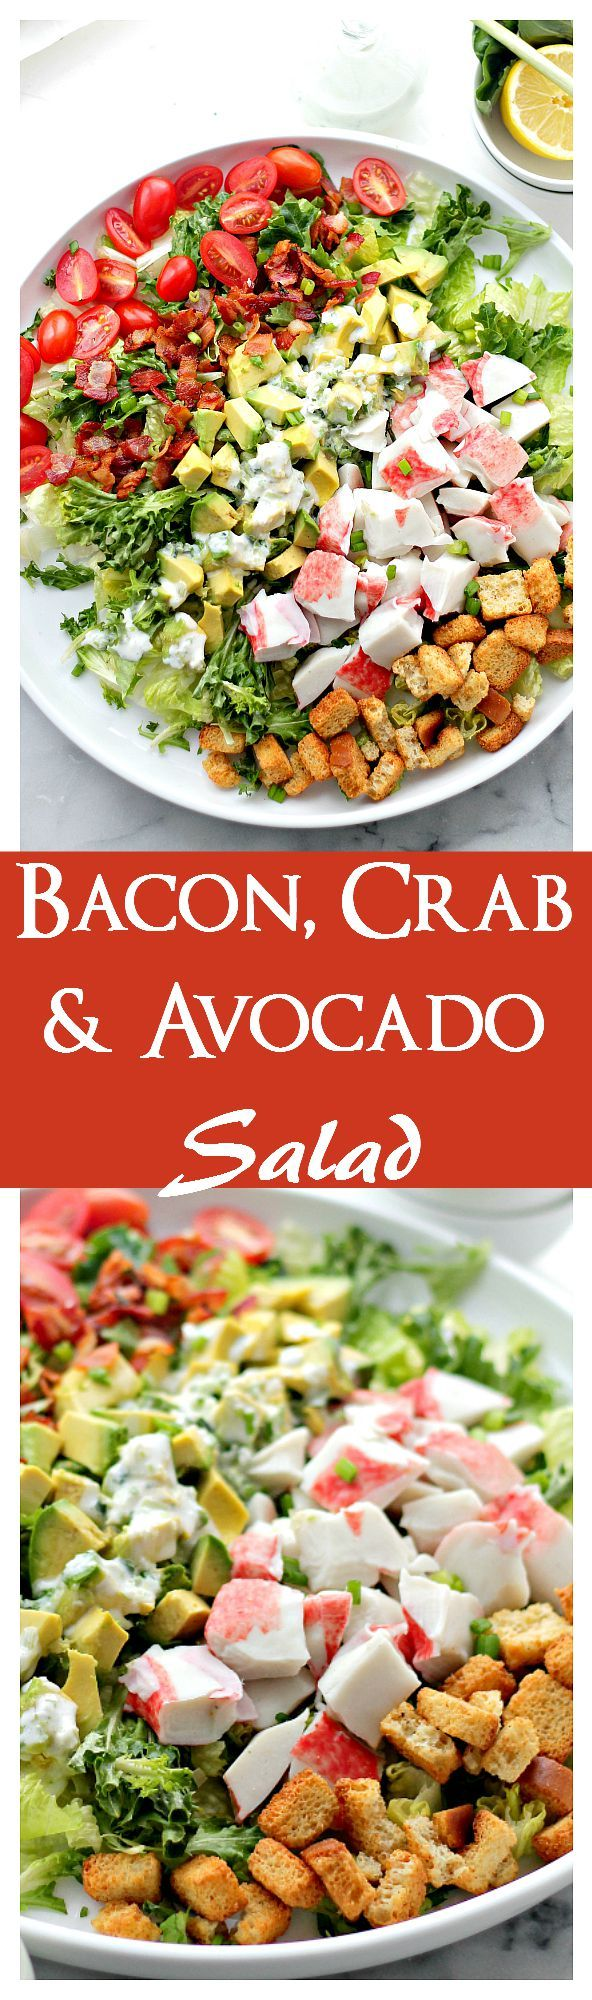 Bacon, Crab and Avocado Salad | www.diethood.com | A refreshing and delicious salad with a mix of crab meat, avocados and bacon tossed in a homemade Green Onion Yogurt Salad Dressing.